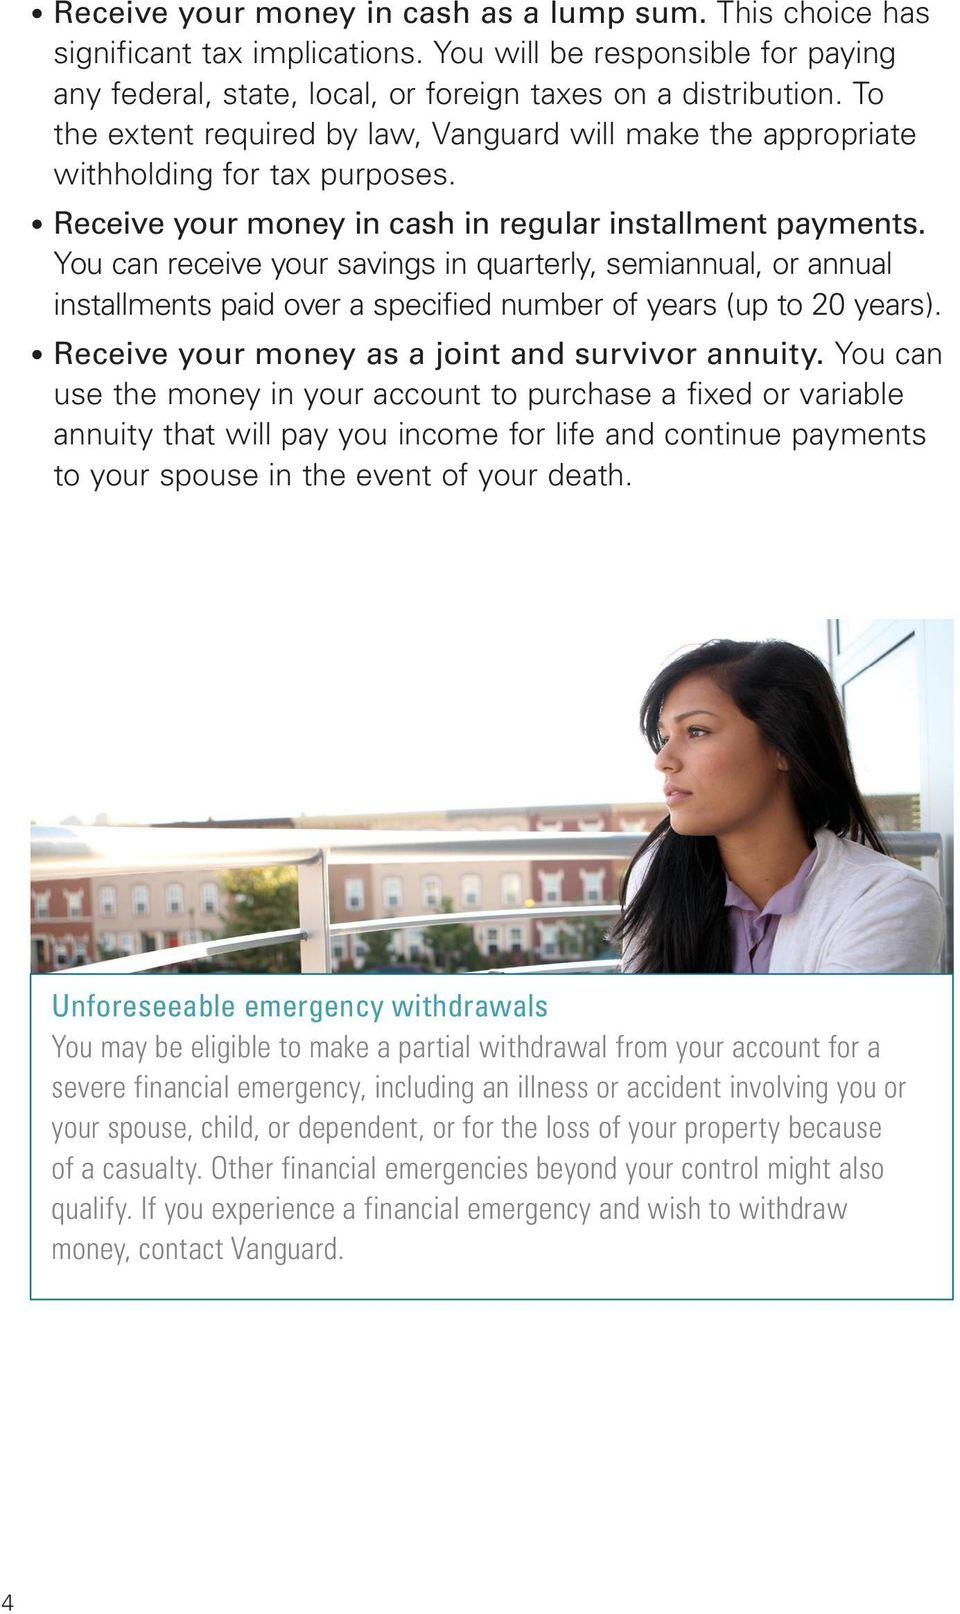 You can receive your savings in quarterly, semiannual, or annual installments paid over a specified number of years (up to 20 years). Receive your money as a joint and survivor annuity.